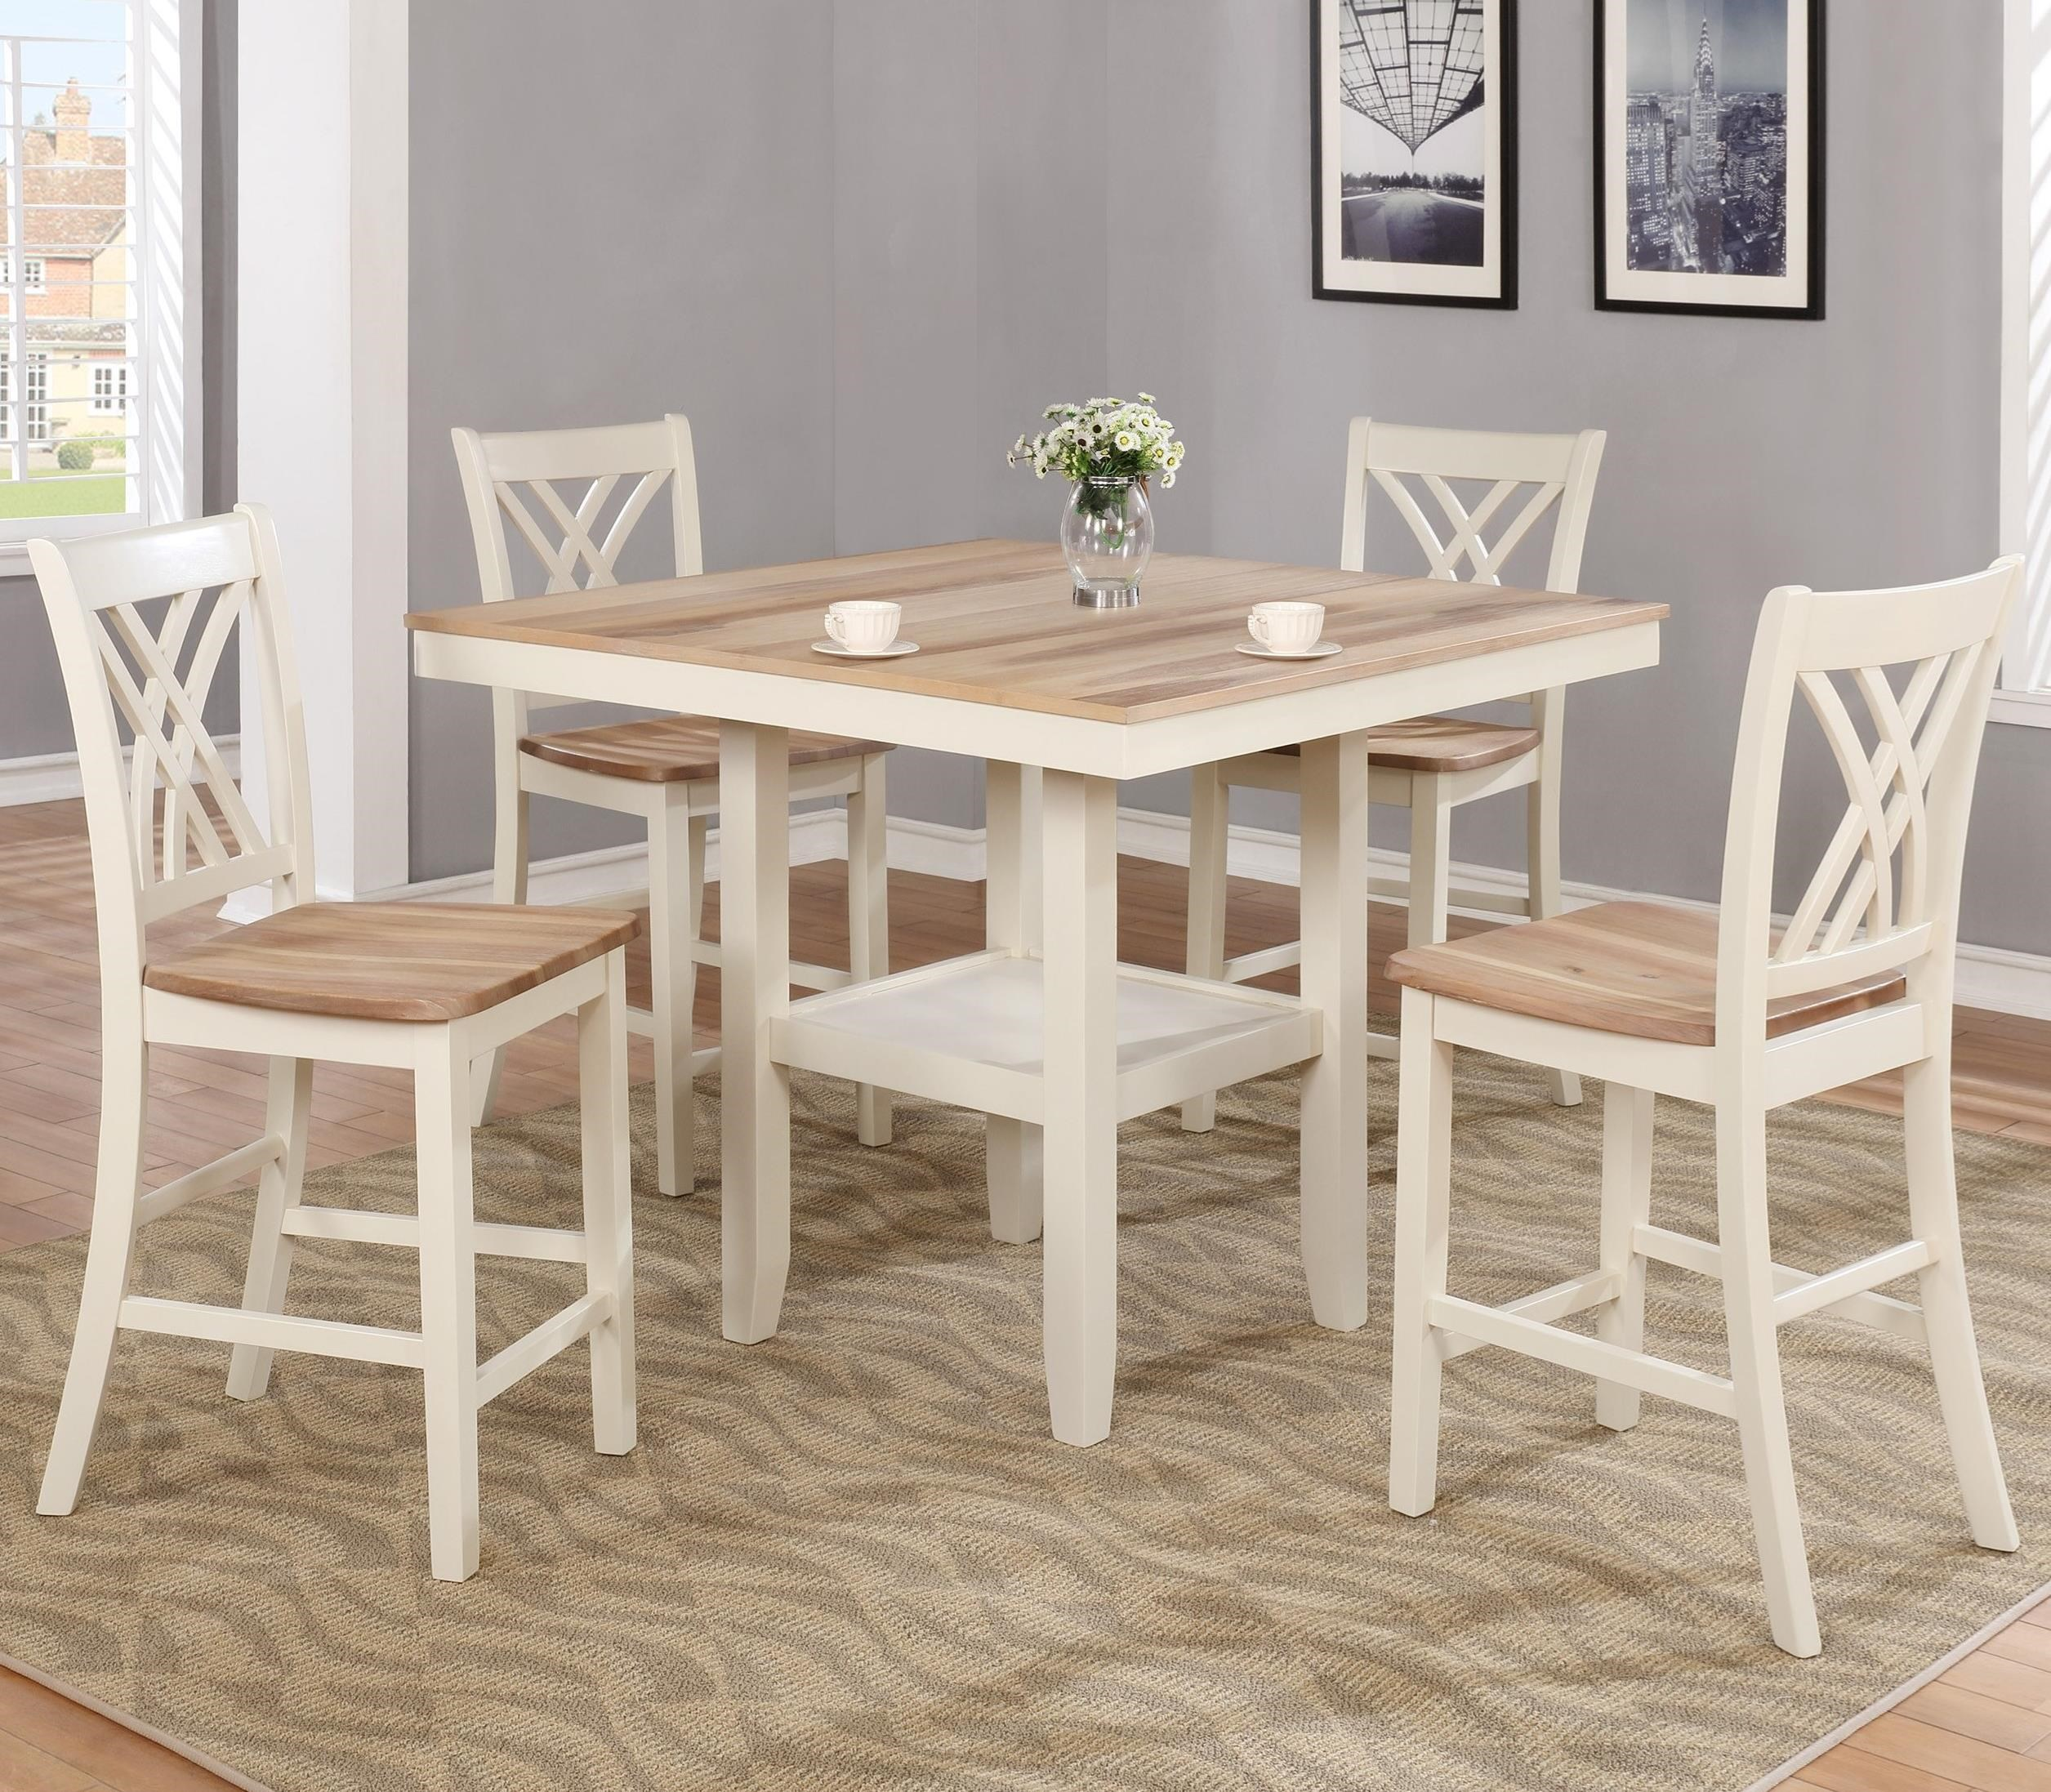 Newcastle Counter Height Dining Table 2 Chairs 2 Stools: Crown Mark Josie Two-Tone Counter Height Table And Chair